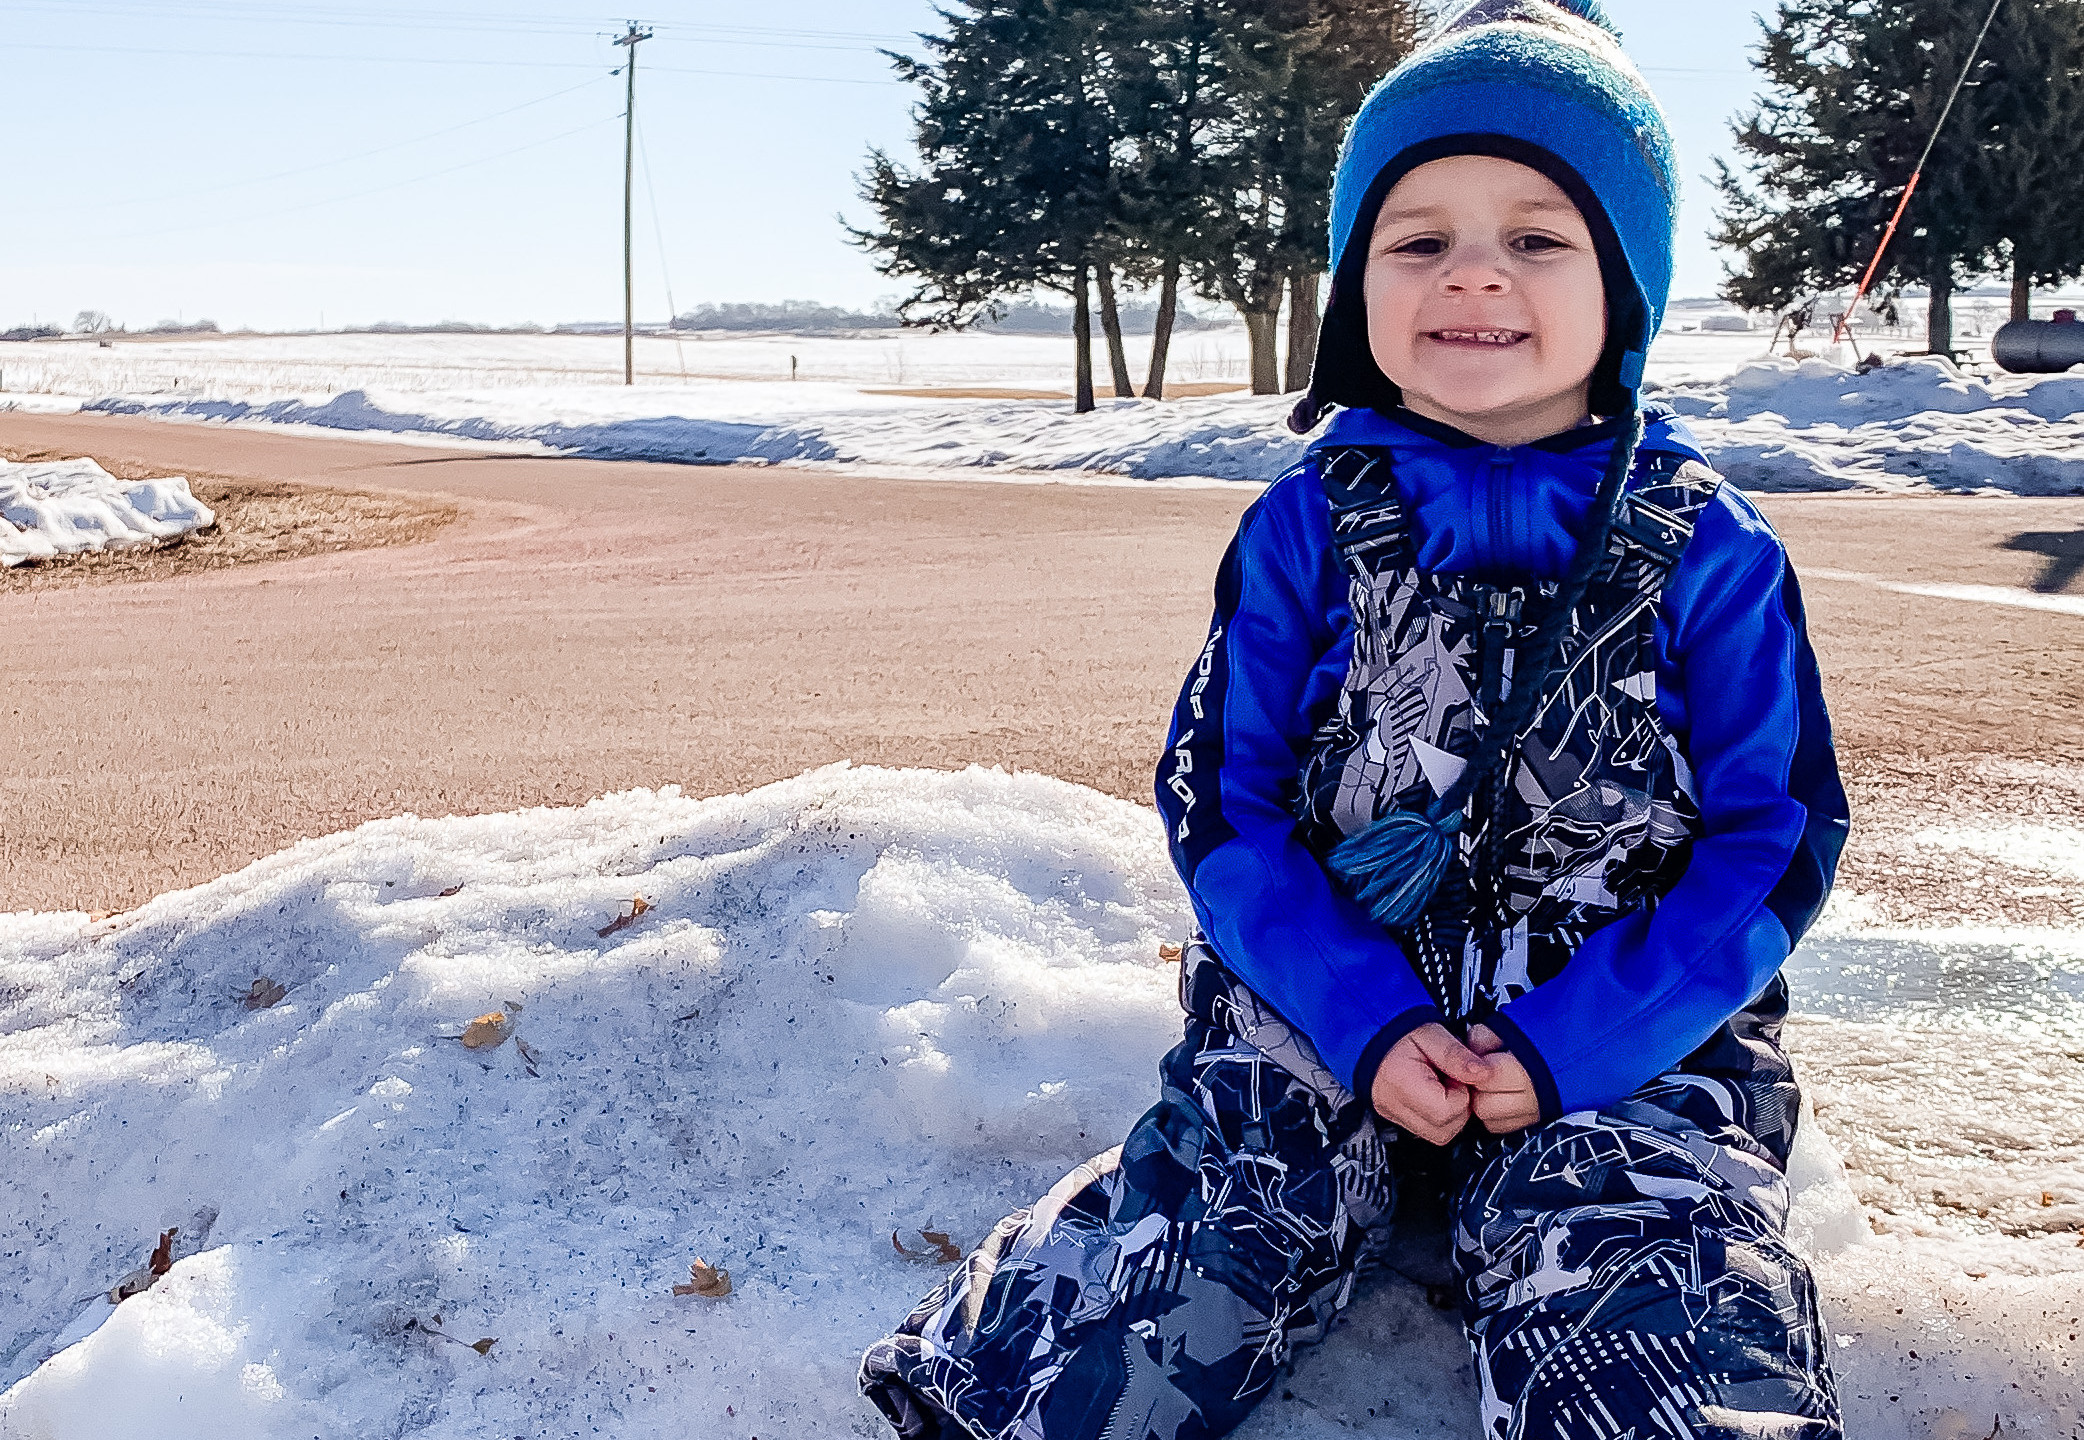 Vander Wollman wishing the snow would melt away. Son of Jeremy and Kelly Wollman.